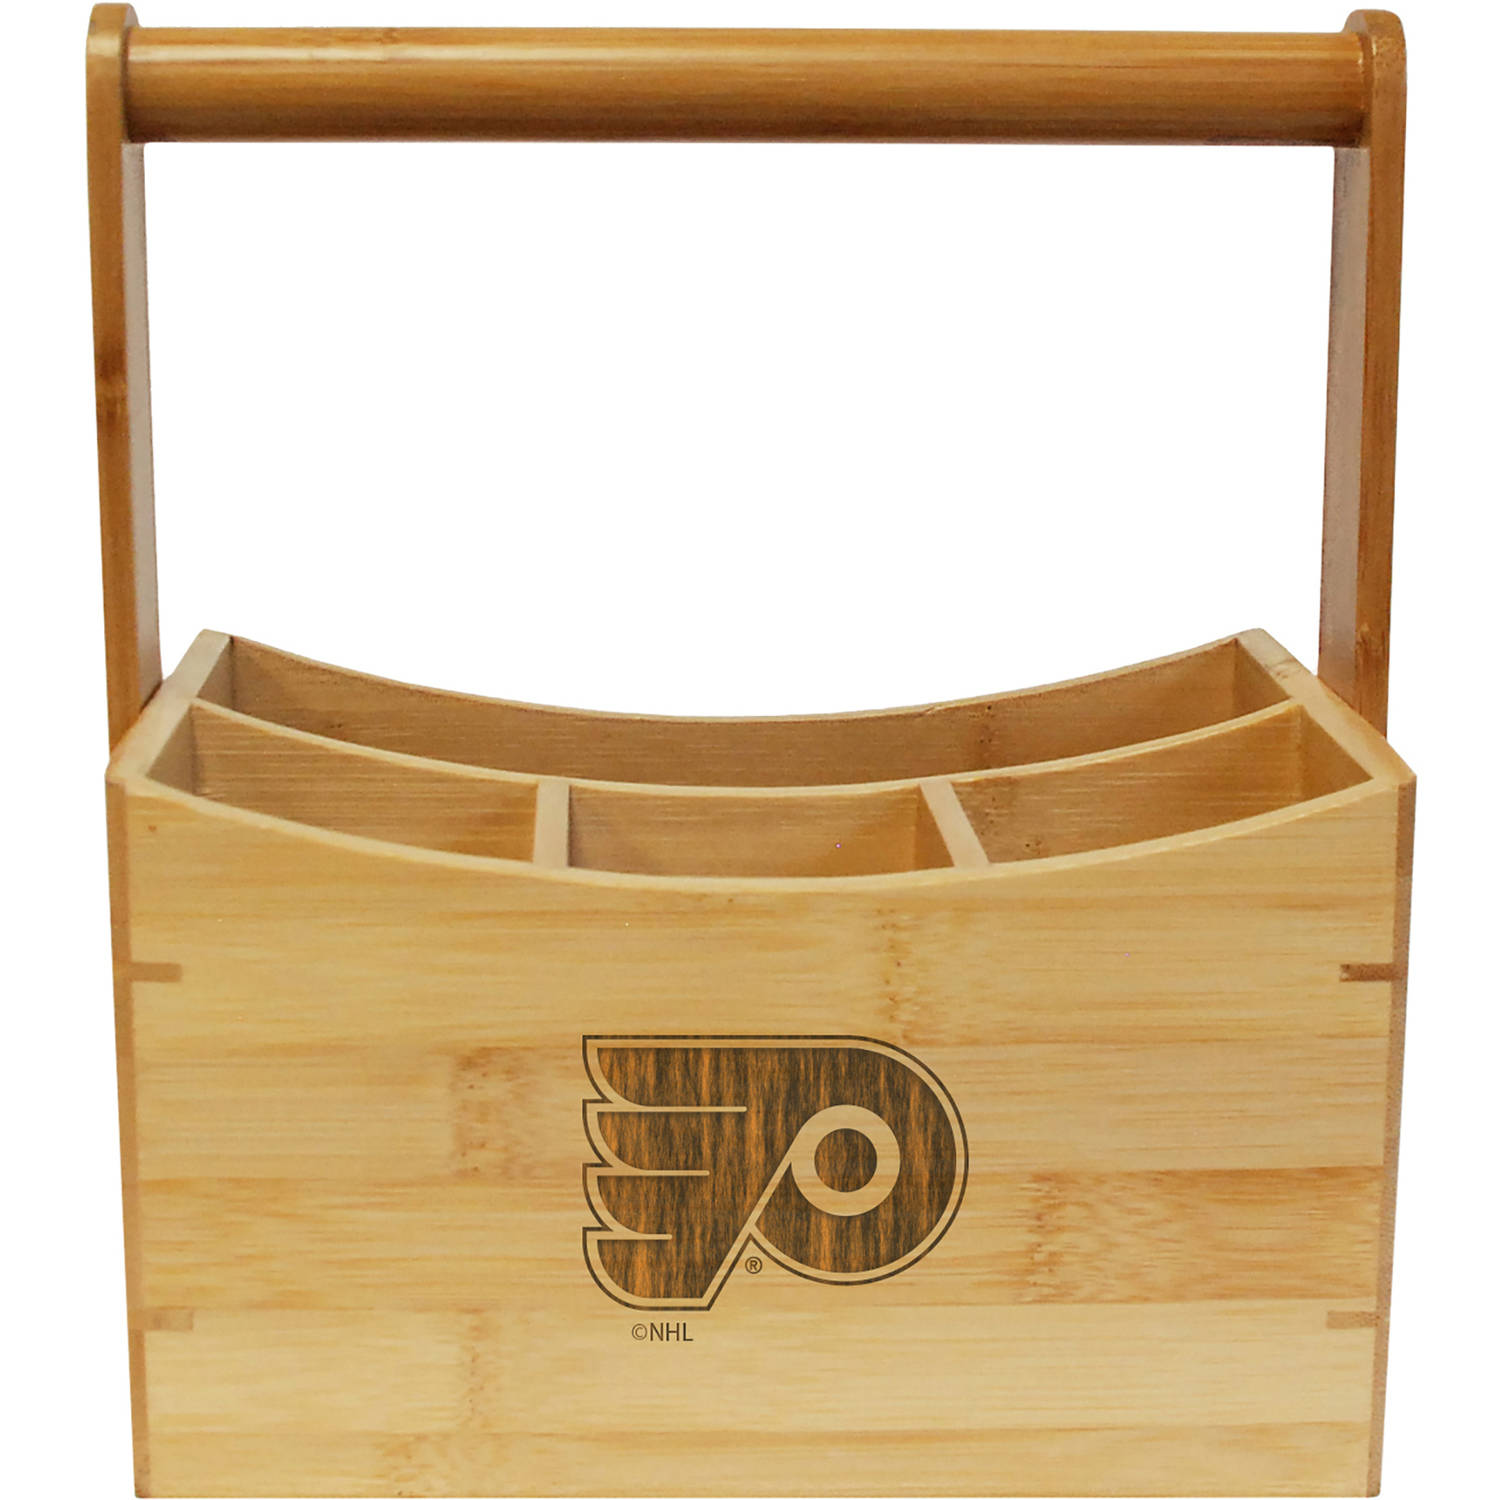 NHL Team Engraved Bamboo Utensil Caddy